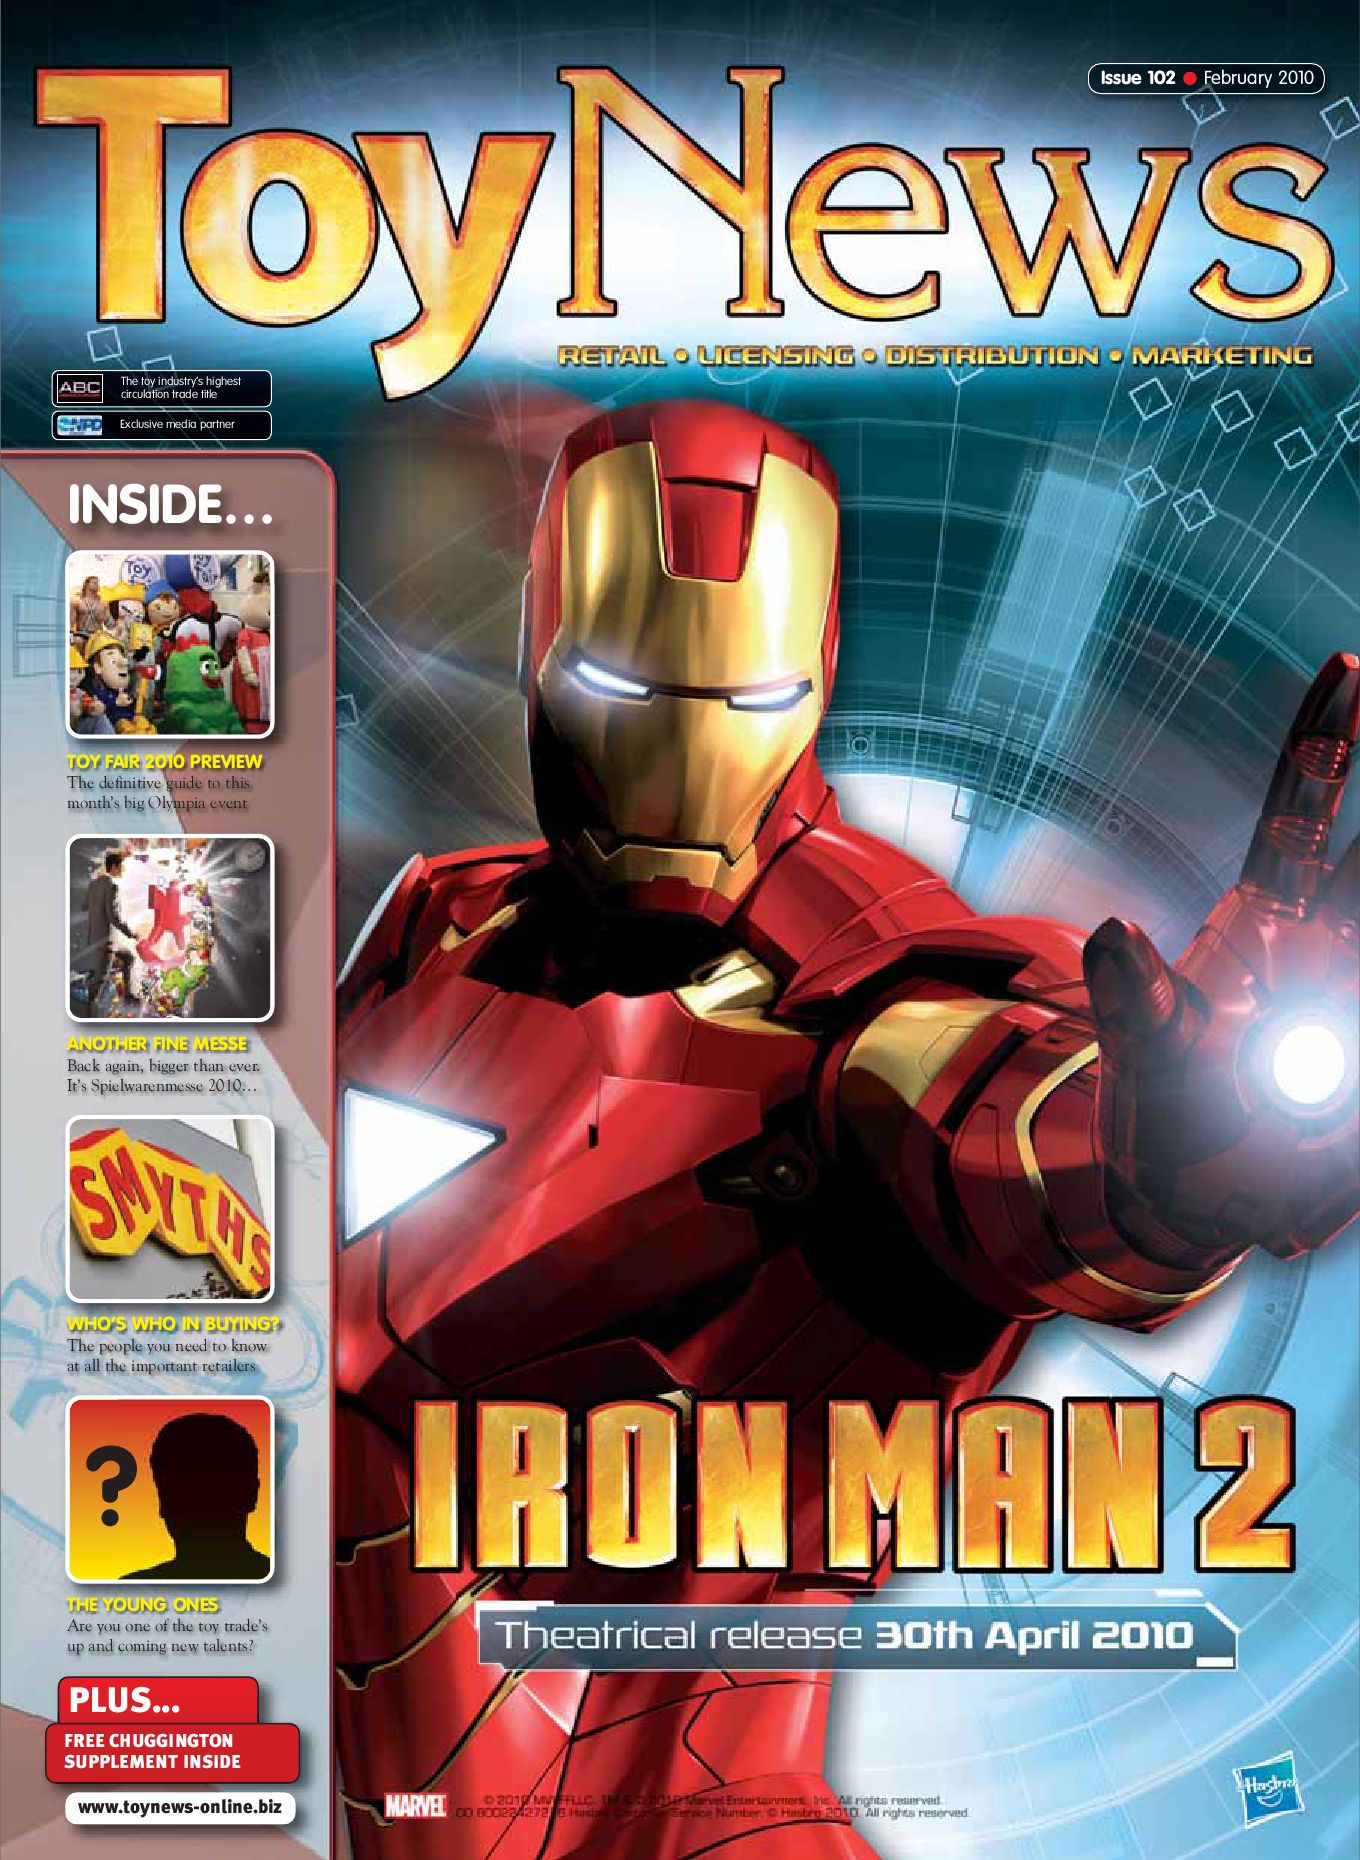 Toynews Issue 102 February 2010 Show By Intent Media Now Sylvanian Families Bott Ant 13 Newbay Europe Issuu